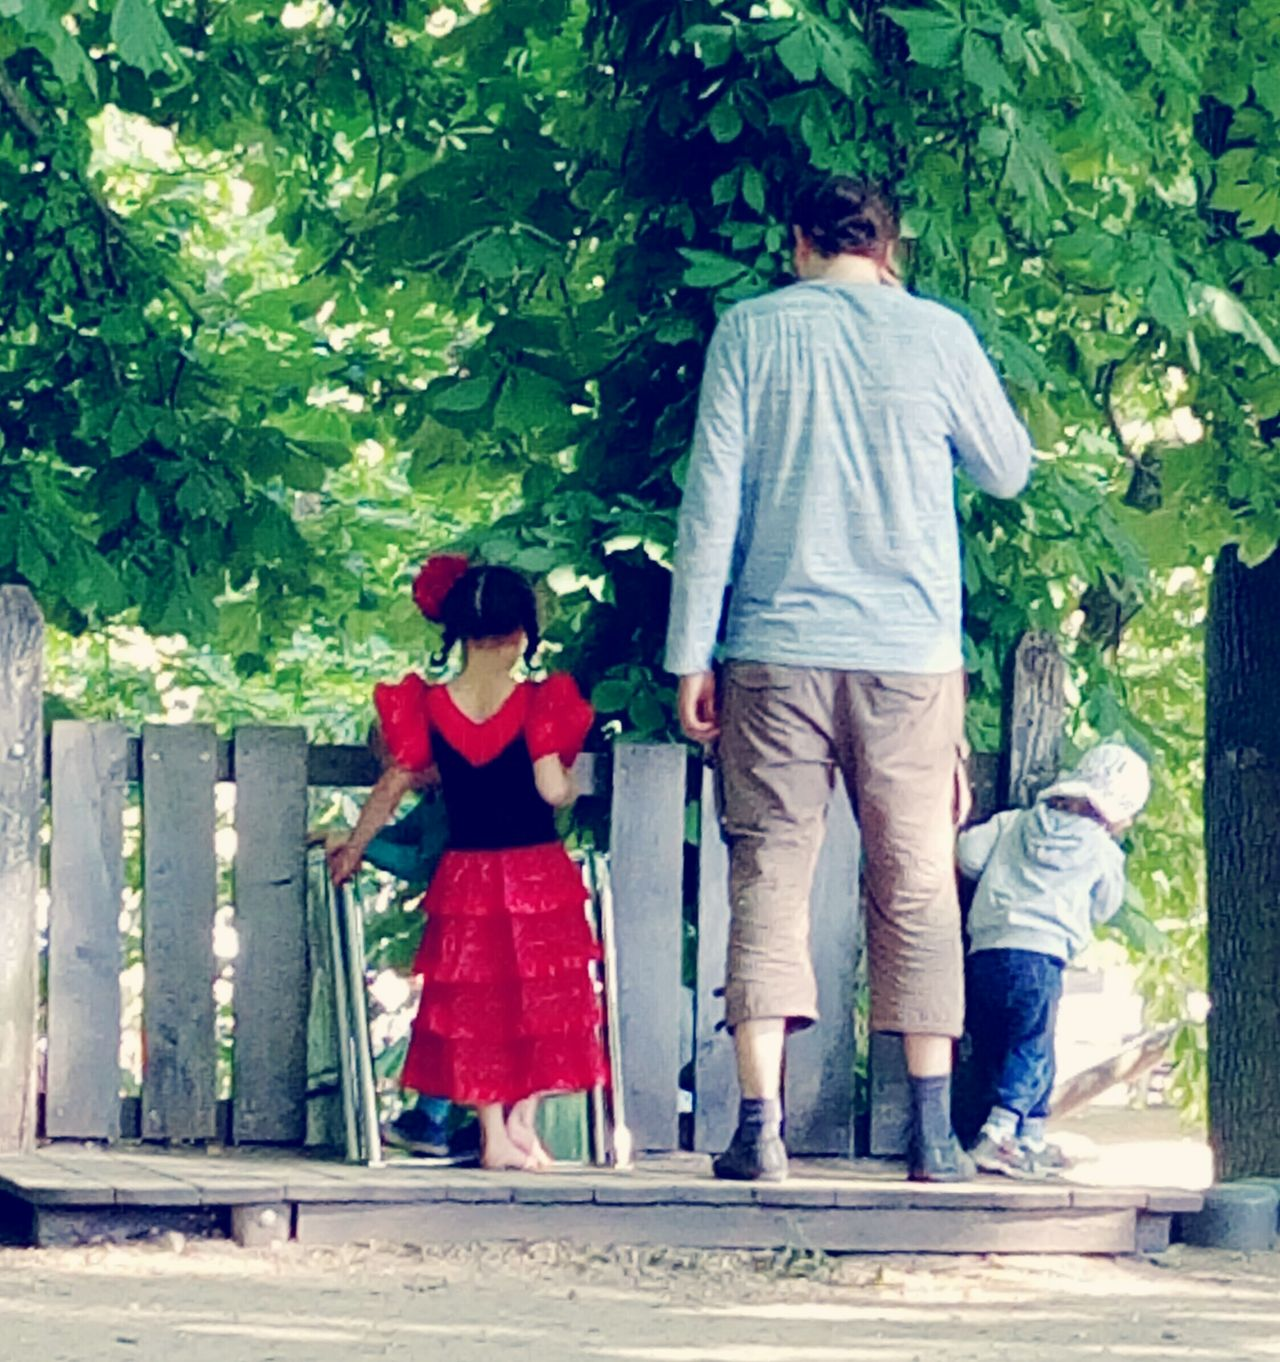 Rear View Togetherness Adult Walking Full Length Mid Adult People Casual Clothing Day Family With One Child Love Outdoors Men Child Father Bonding Leisure Activity Human Body Part Tree Playground Warm Weather Urban Lifestyle Low Section Red Dress Flamenco Dress